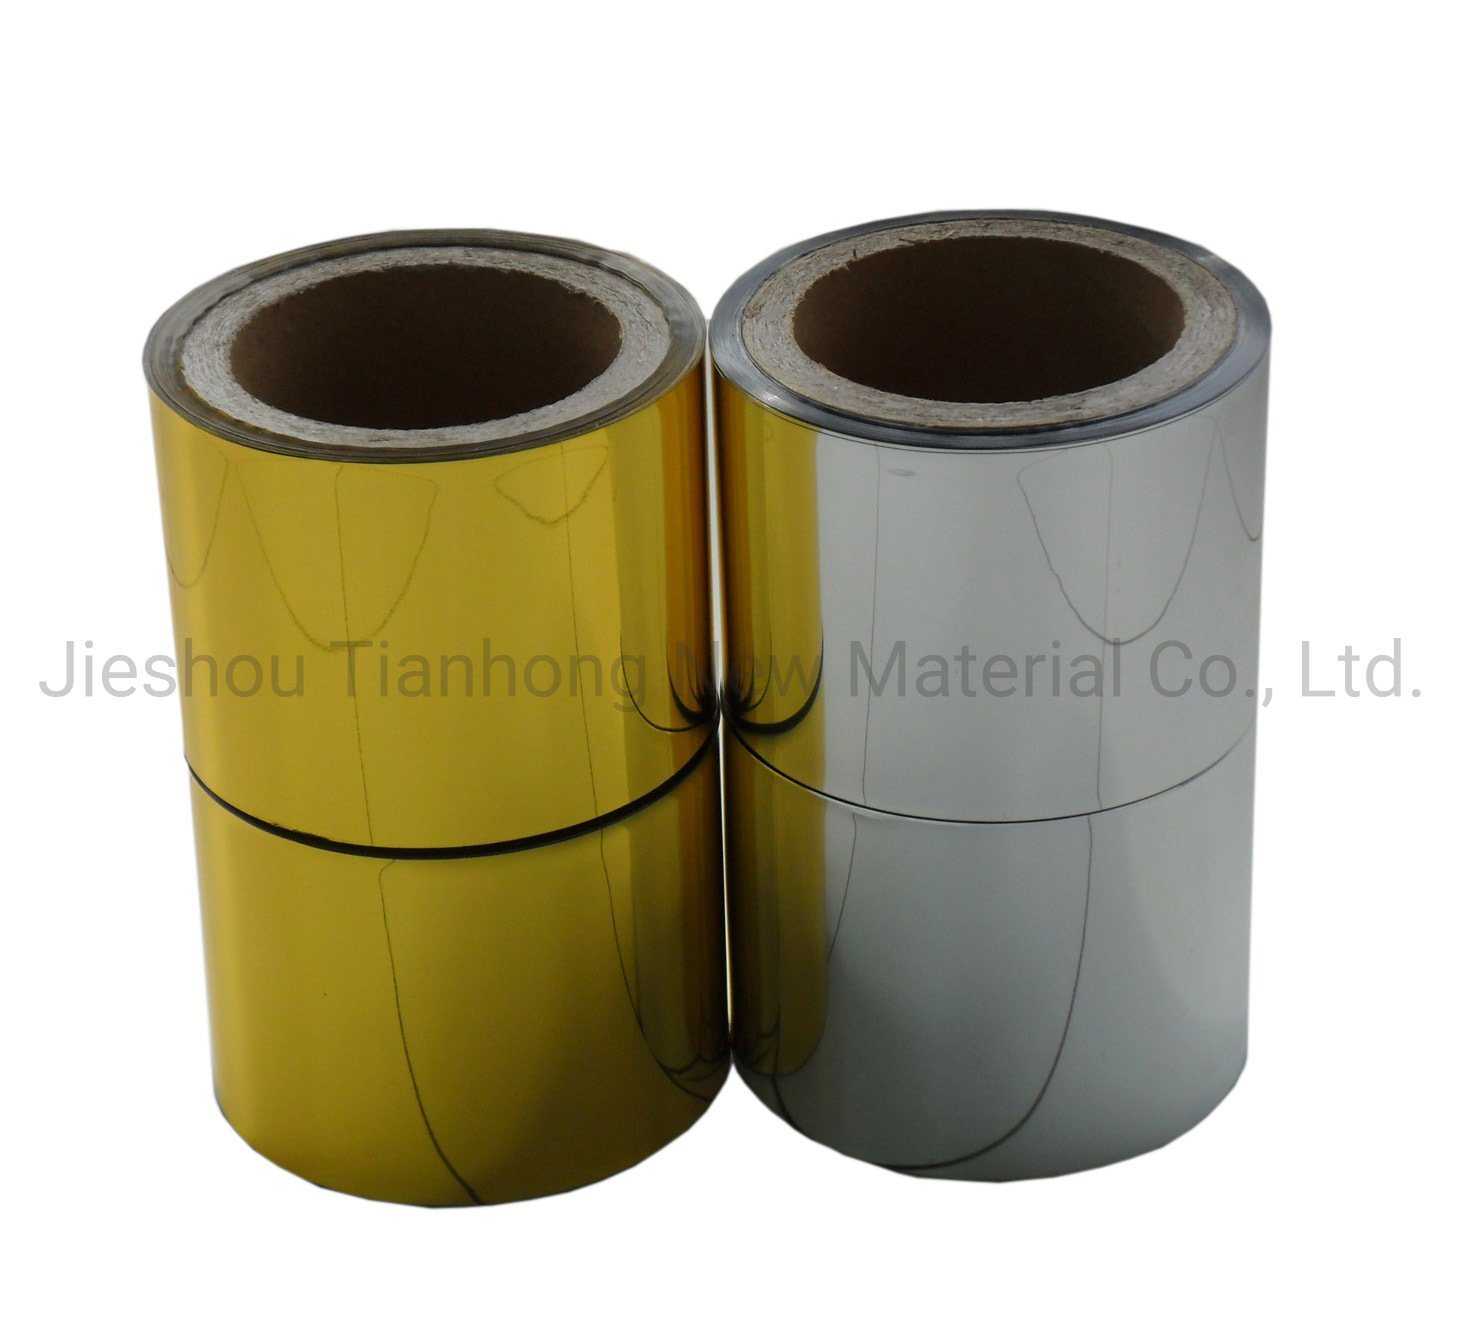 Product industry confectionery Wrapped